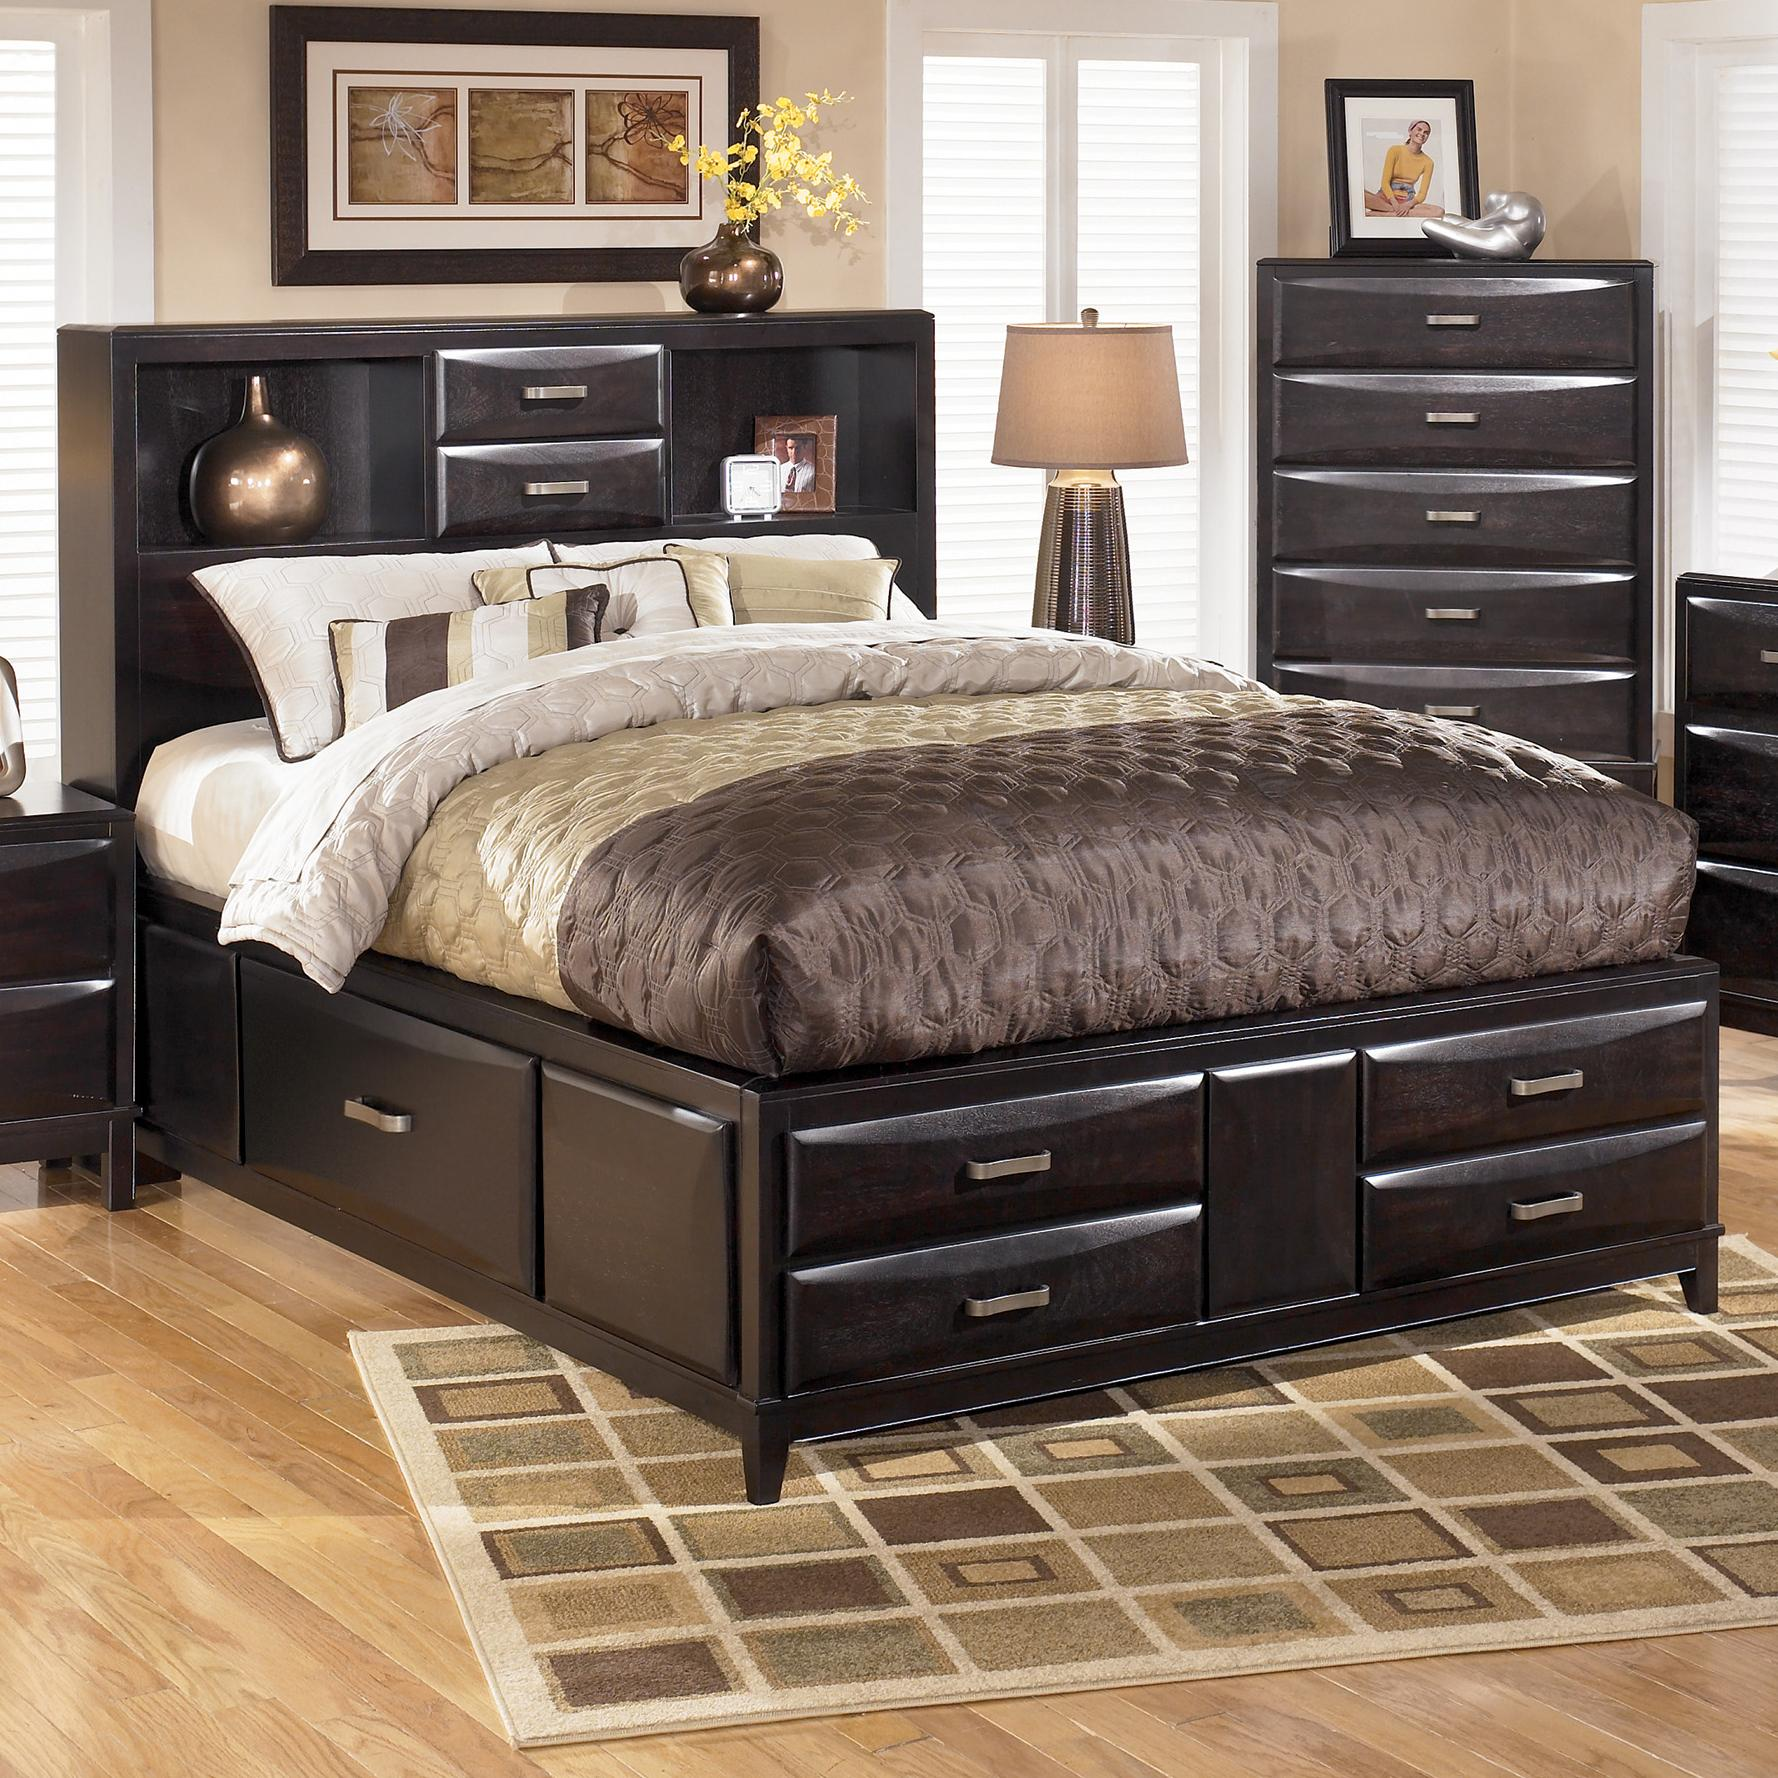 Cozy ashley furniture tacoma for home furniture with ashley furniture tacoma wa